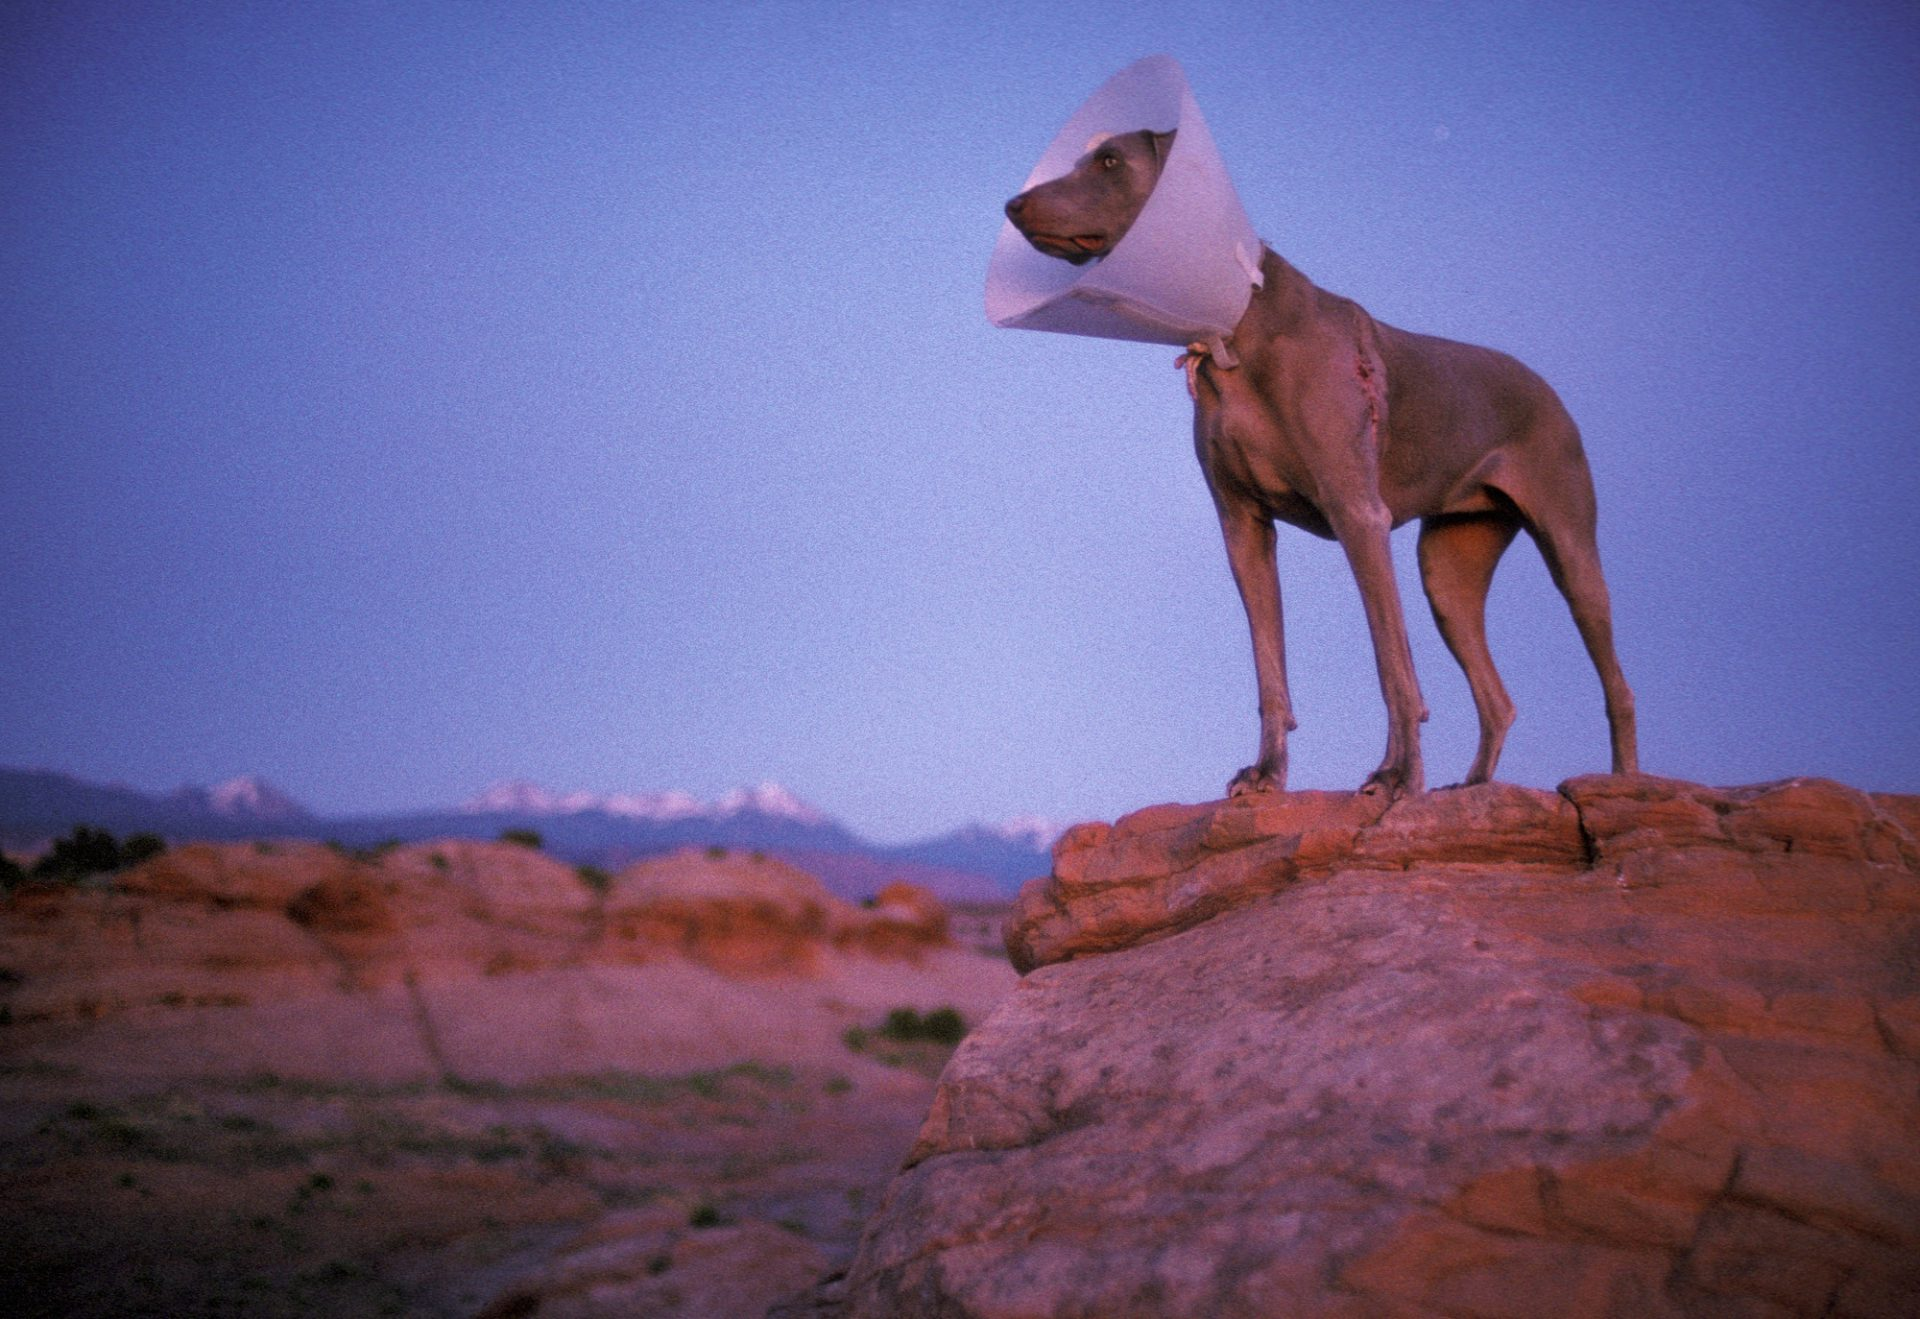 Photo: Sage the dog wears a protective collar to keep her from licking a wound she suffered on Moab's Slickrock Trail earlier in the day.